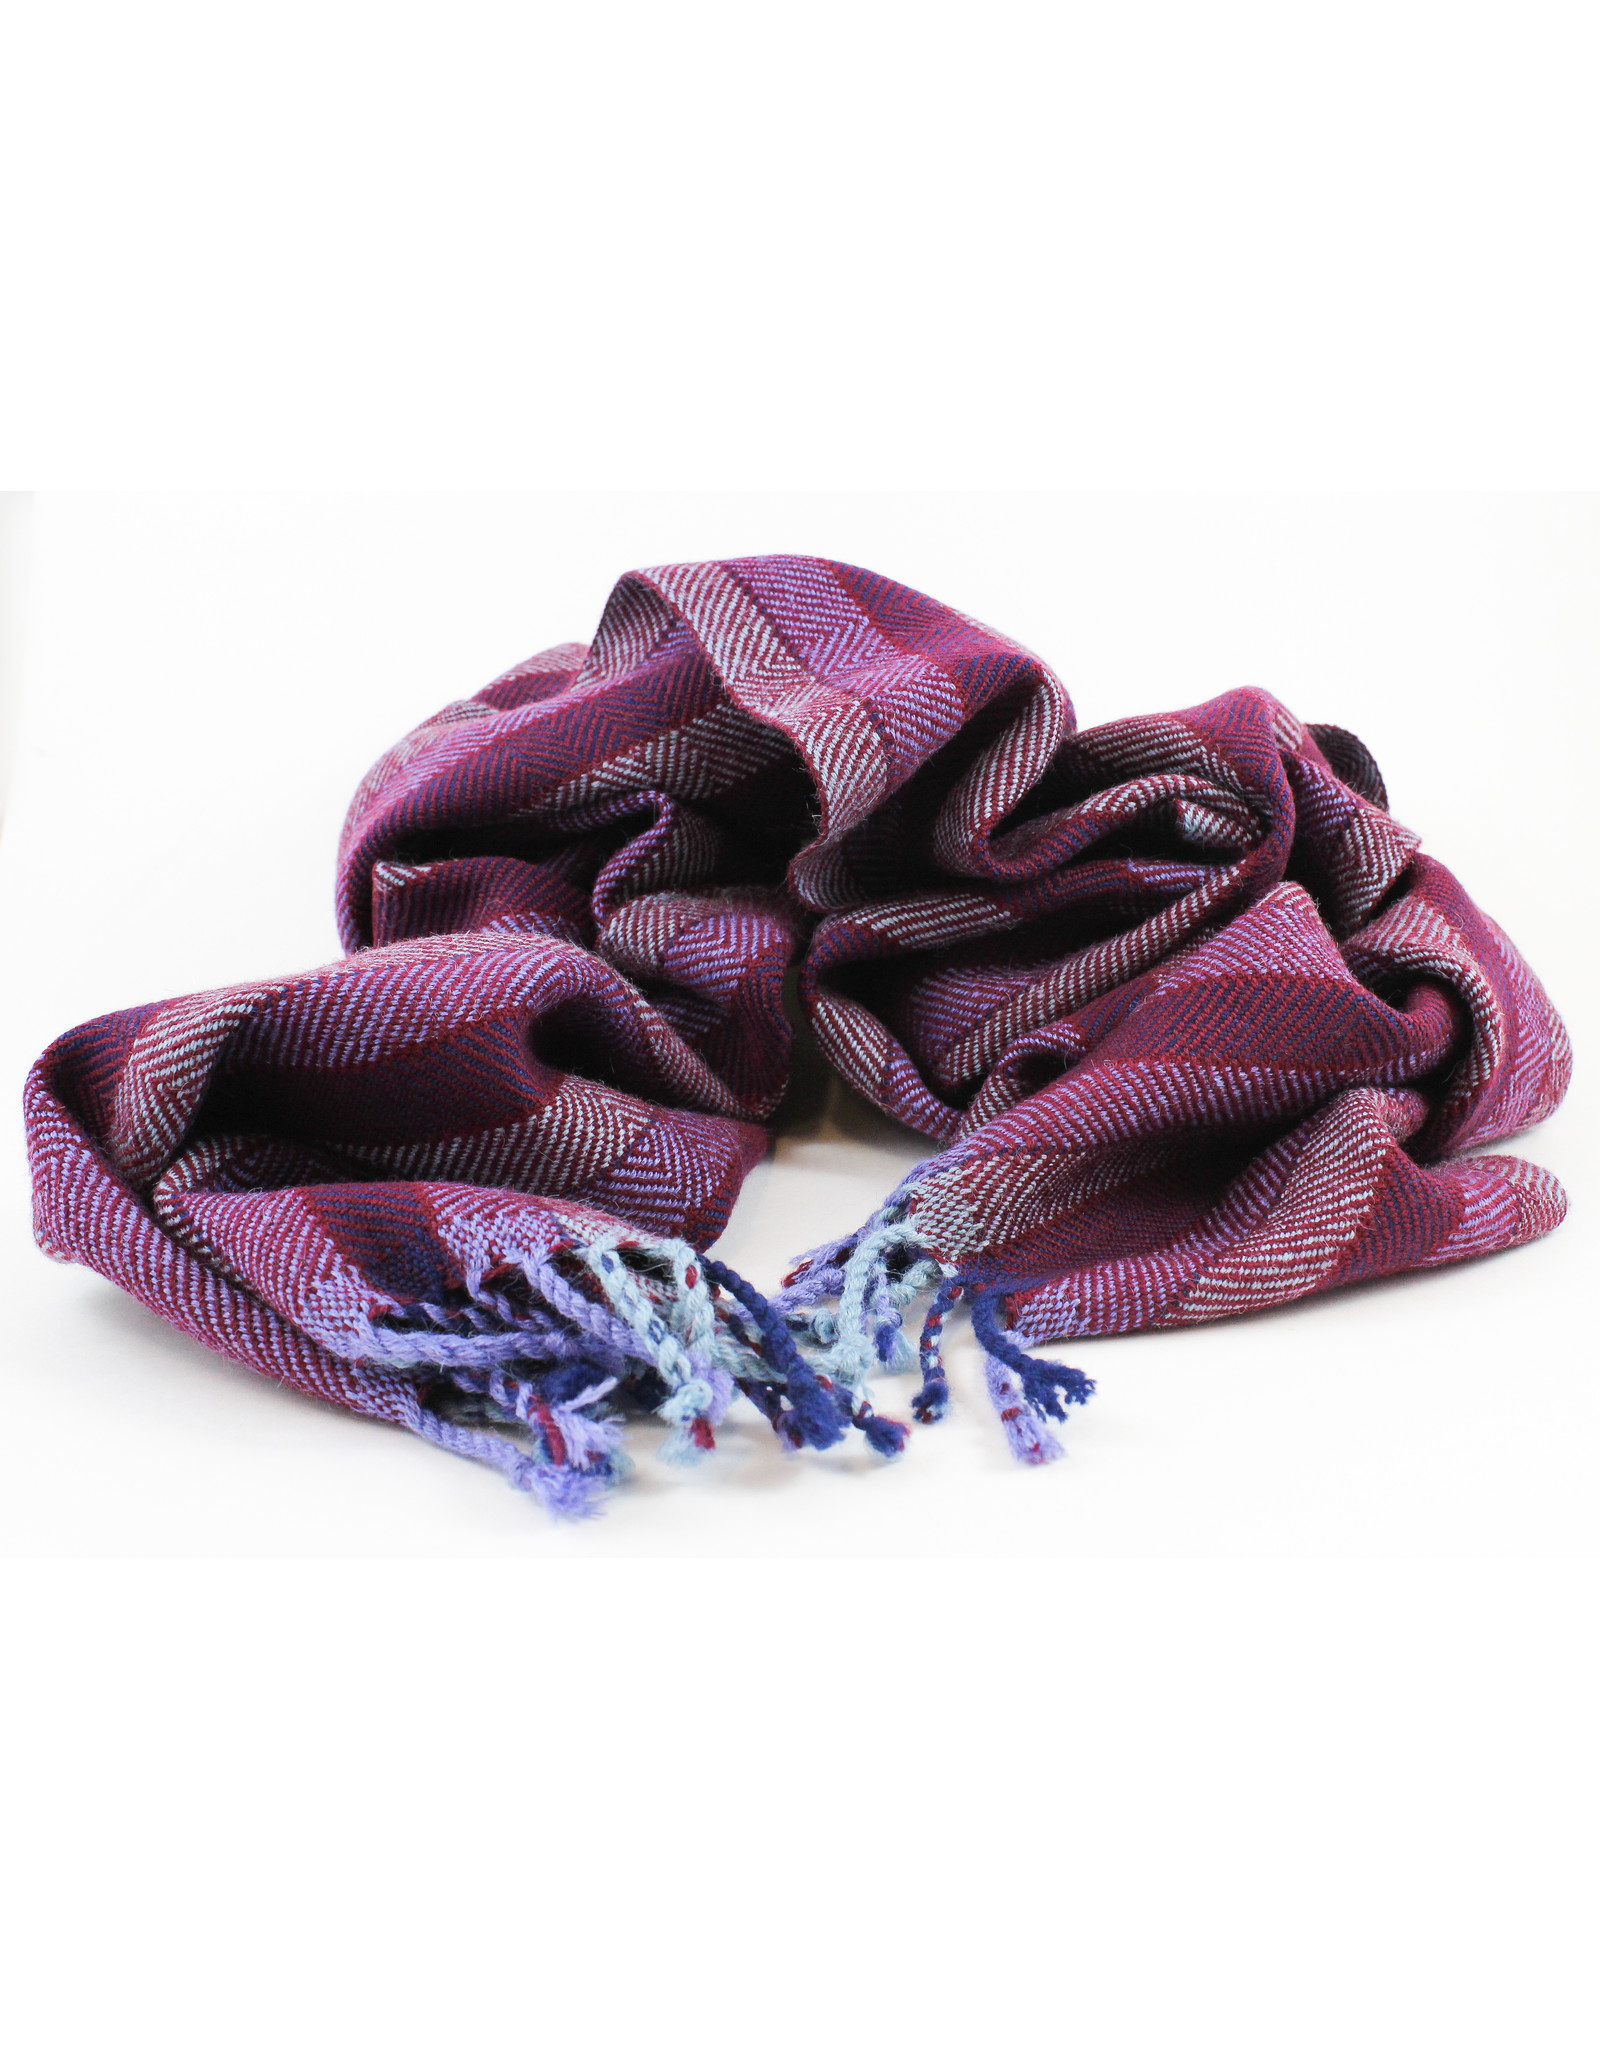 Jane Alderdice Merino/Alpaca/Silk Blend Scarf by Jane Alderdice